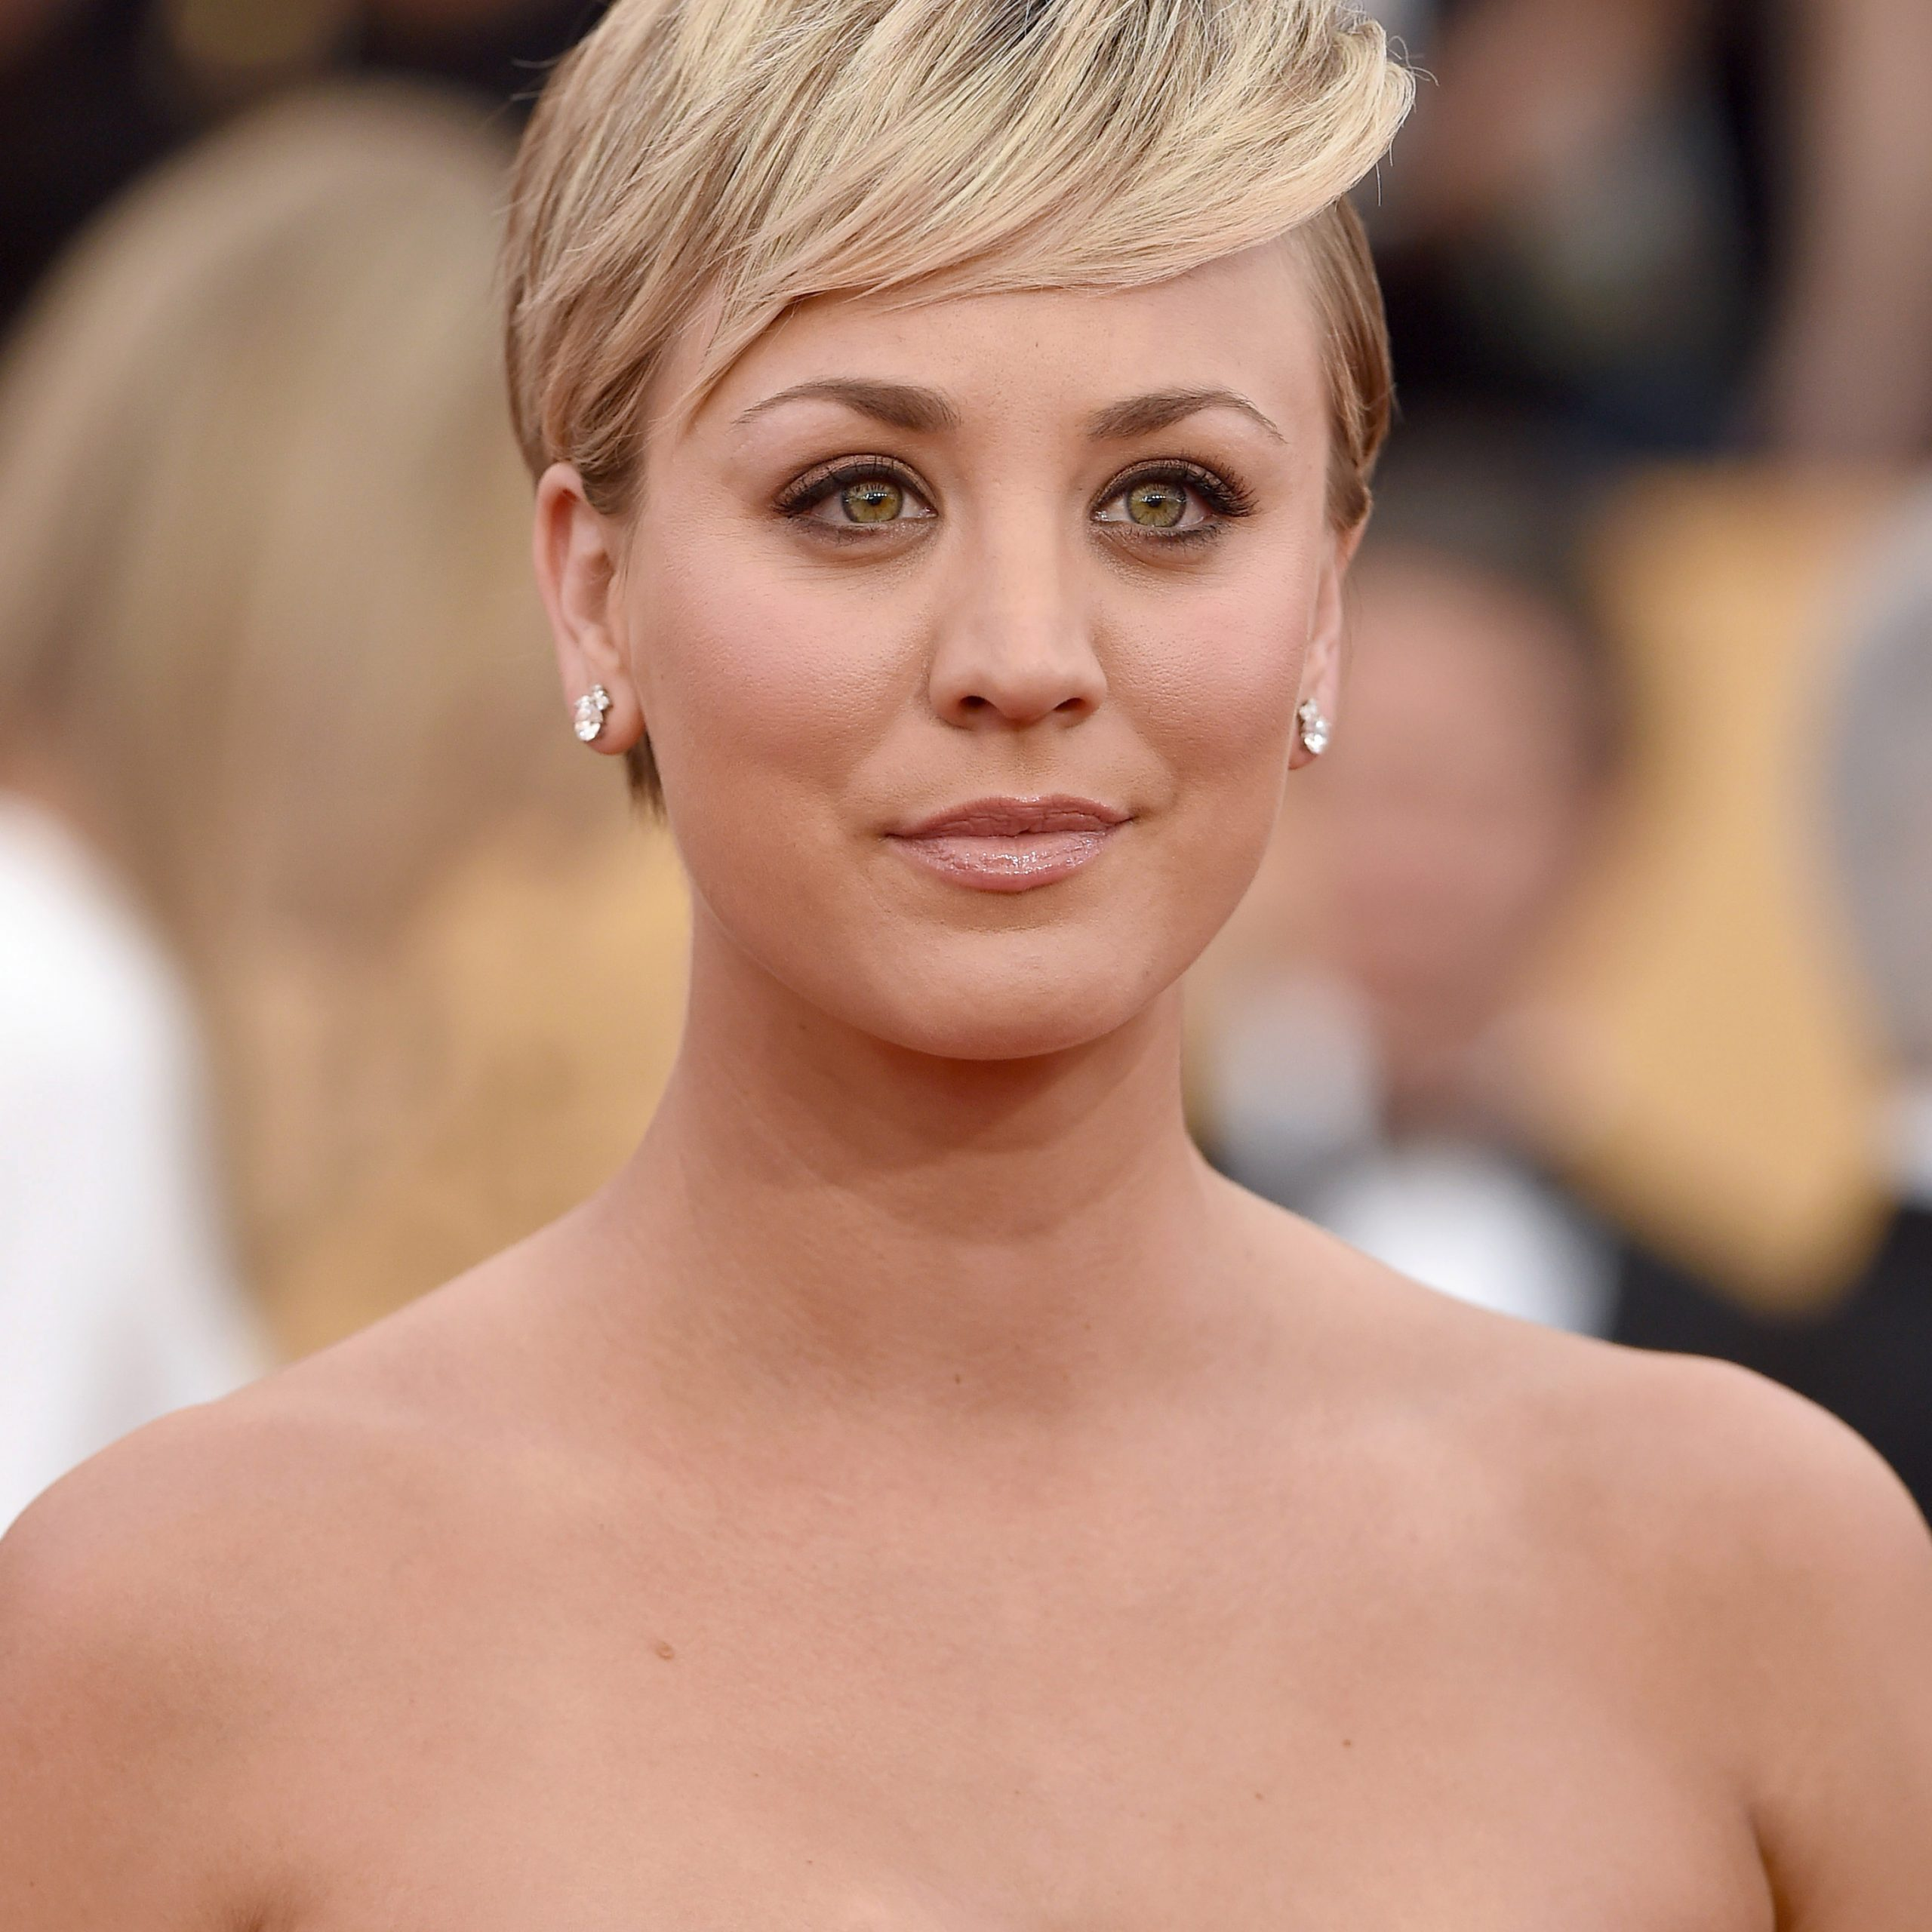 Fashionable Classic Undercut Pixie Haircuts In 3 Great Pixie Haircuts For Short Hair – Short And Cuts (View 2 of 20)